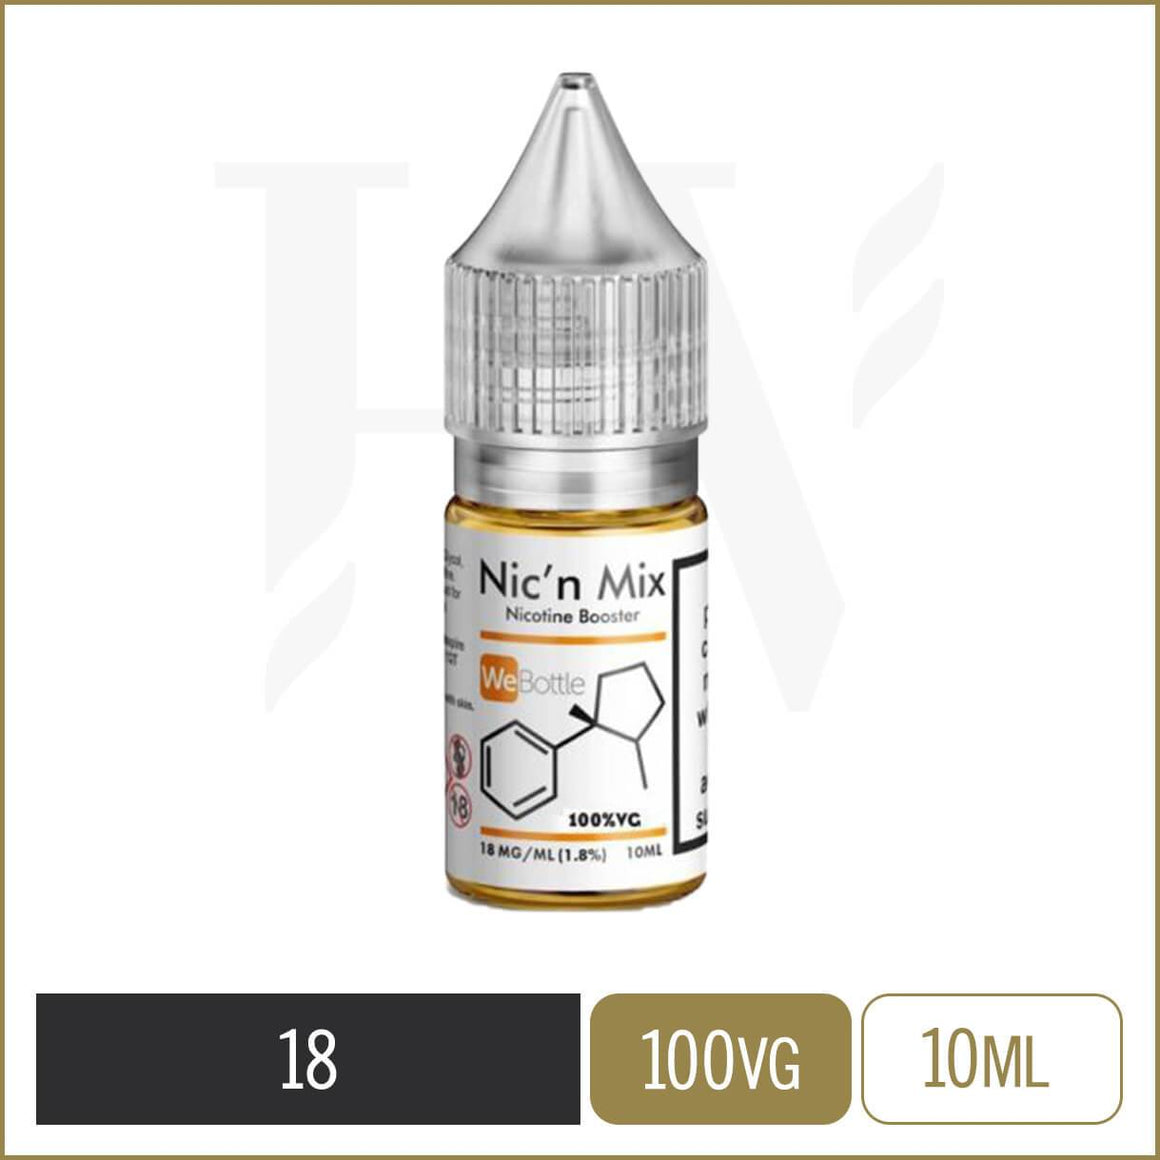 Nic' n Mix 100% VG nicotine shot 18MG/ML